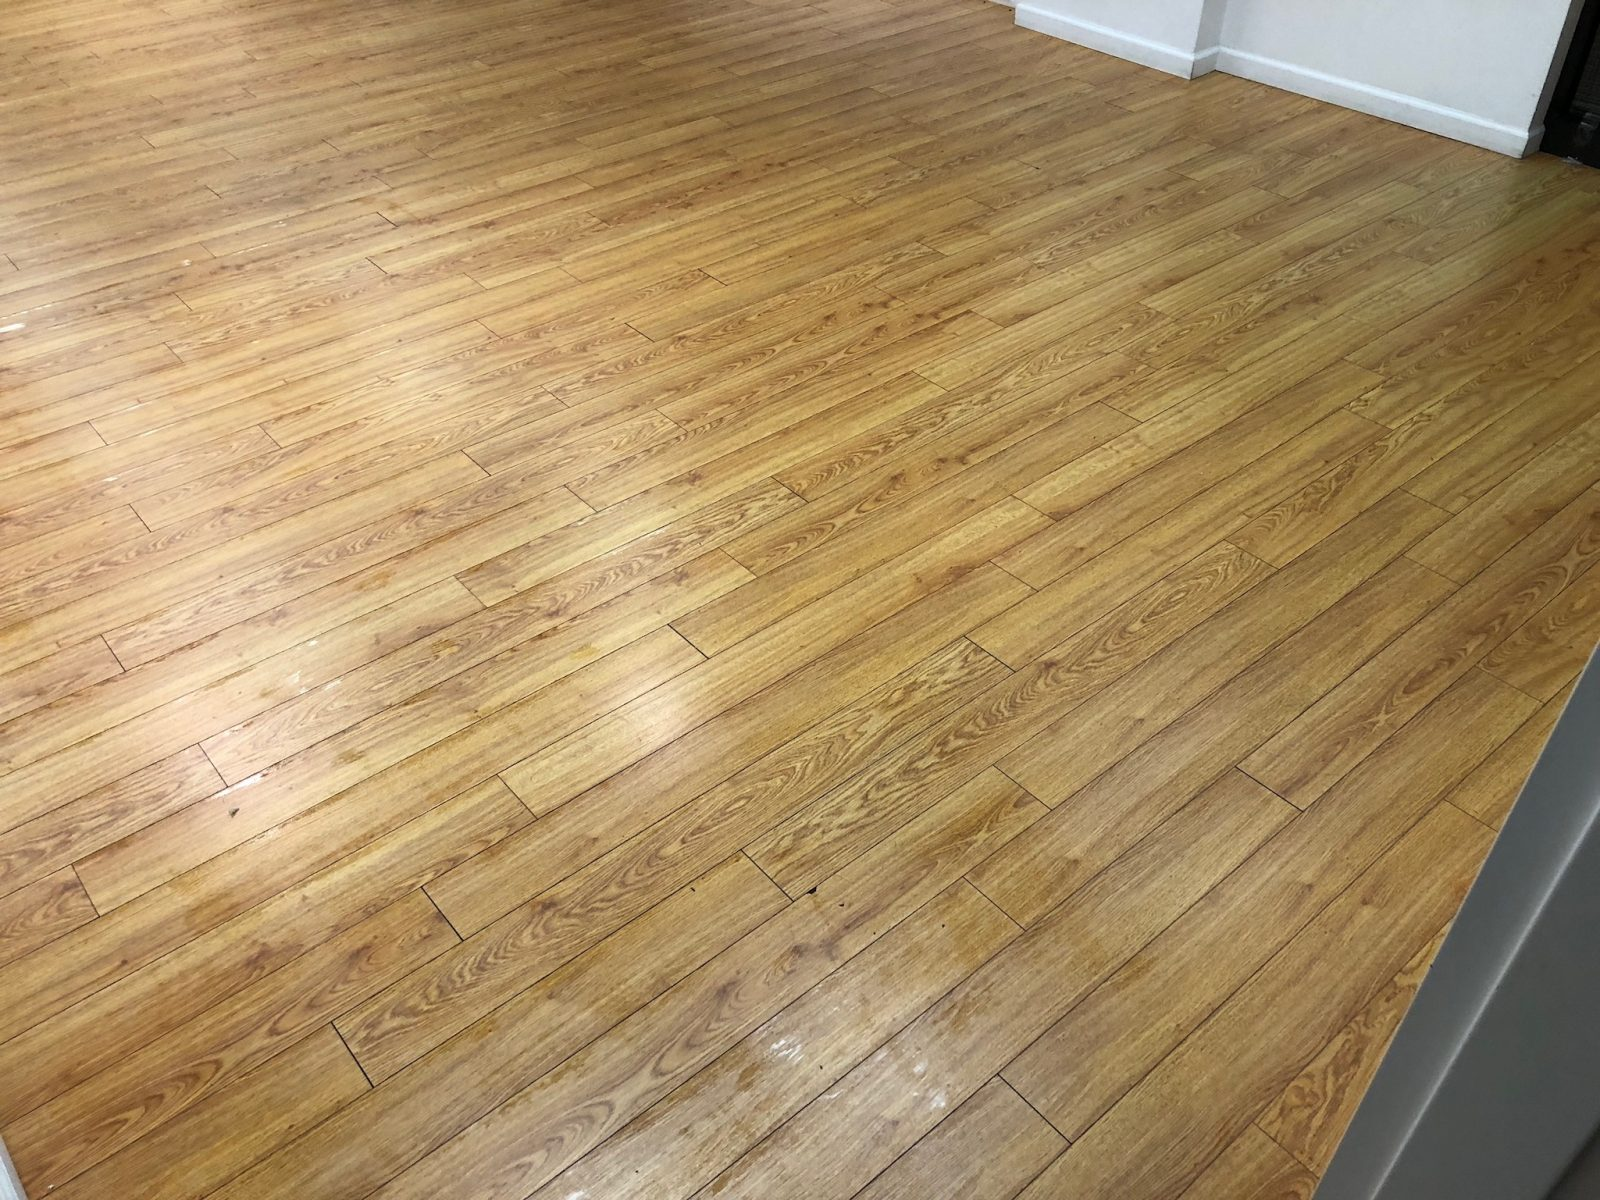 Professional Hardwood Floor Cleaning Loveland Ohio by Howards Cleaning Service